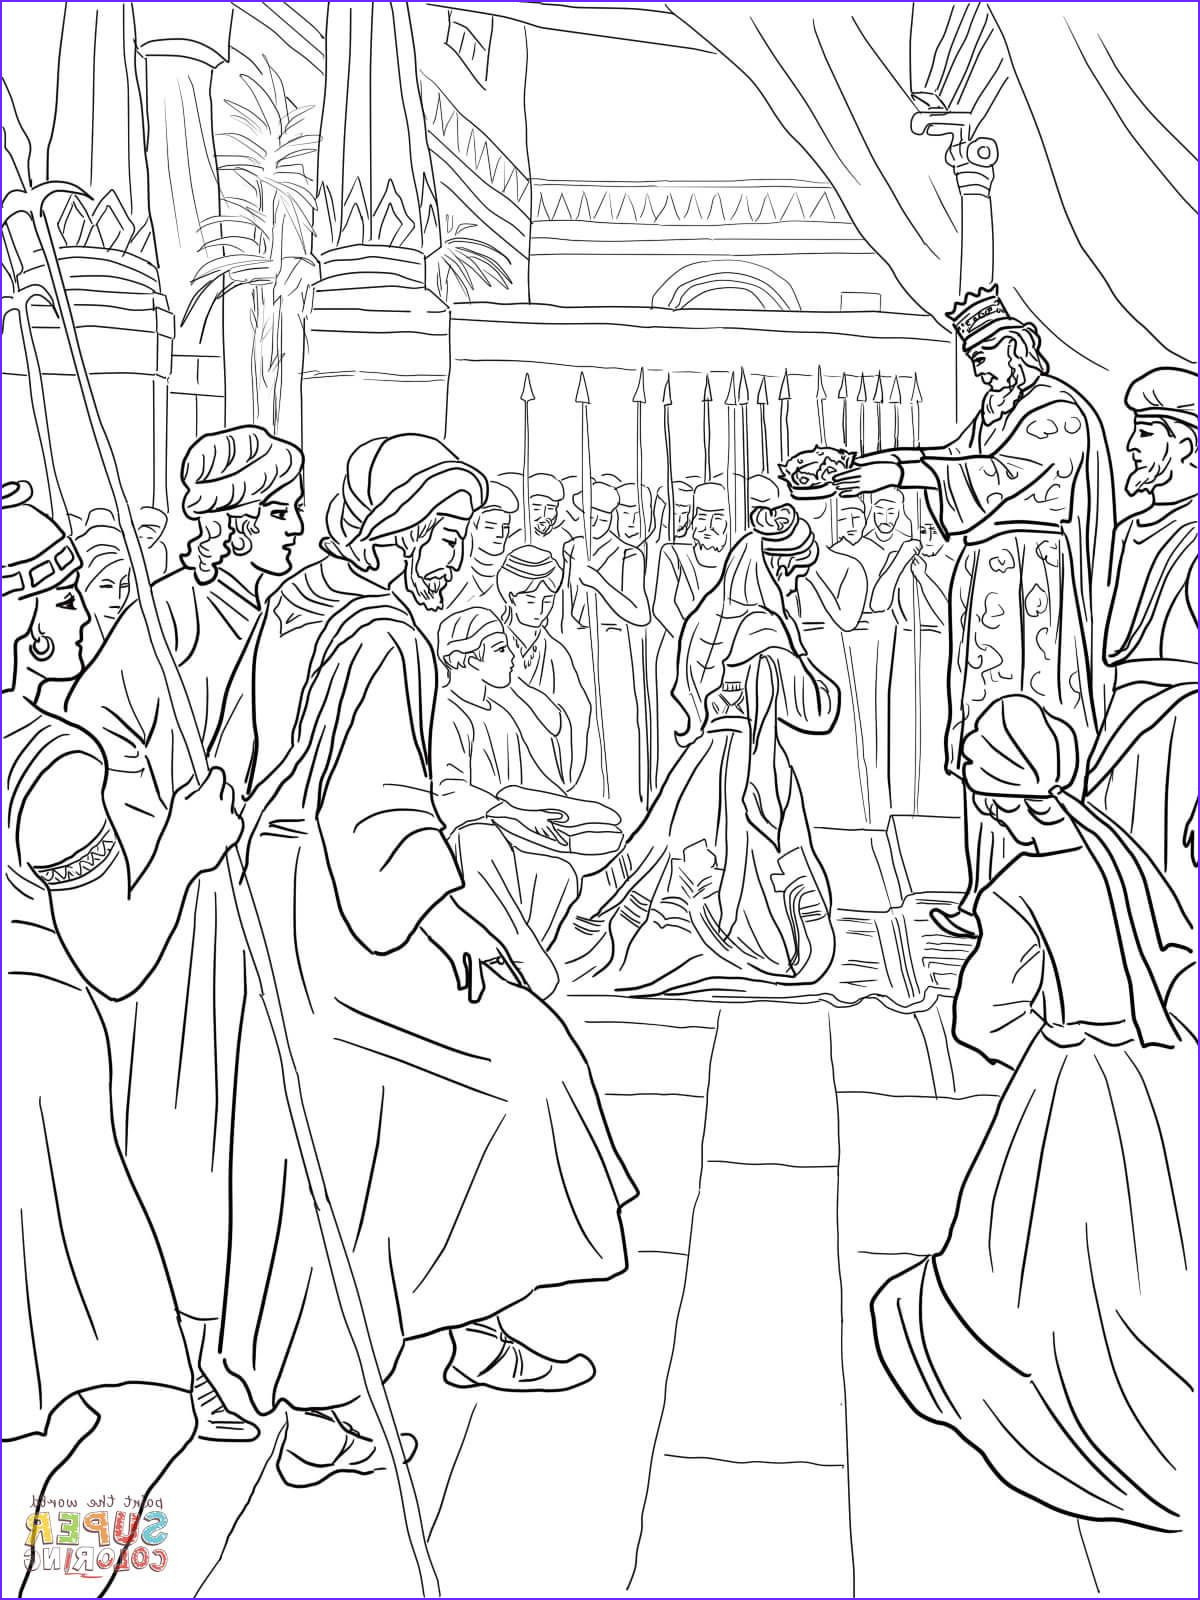 Queen Esther Coloring Page New Photos Esther Wordt Een Koningin Super Coloring